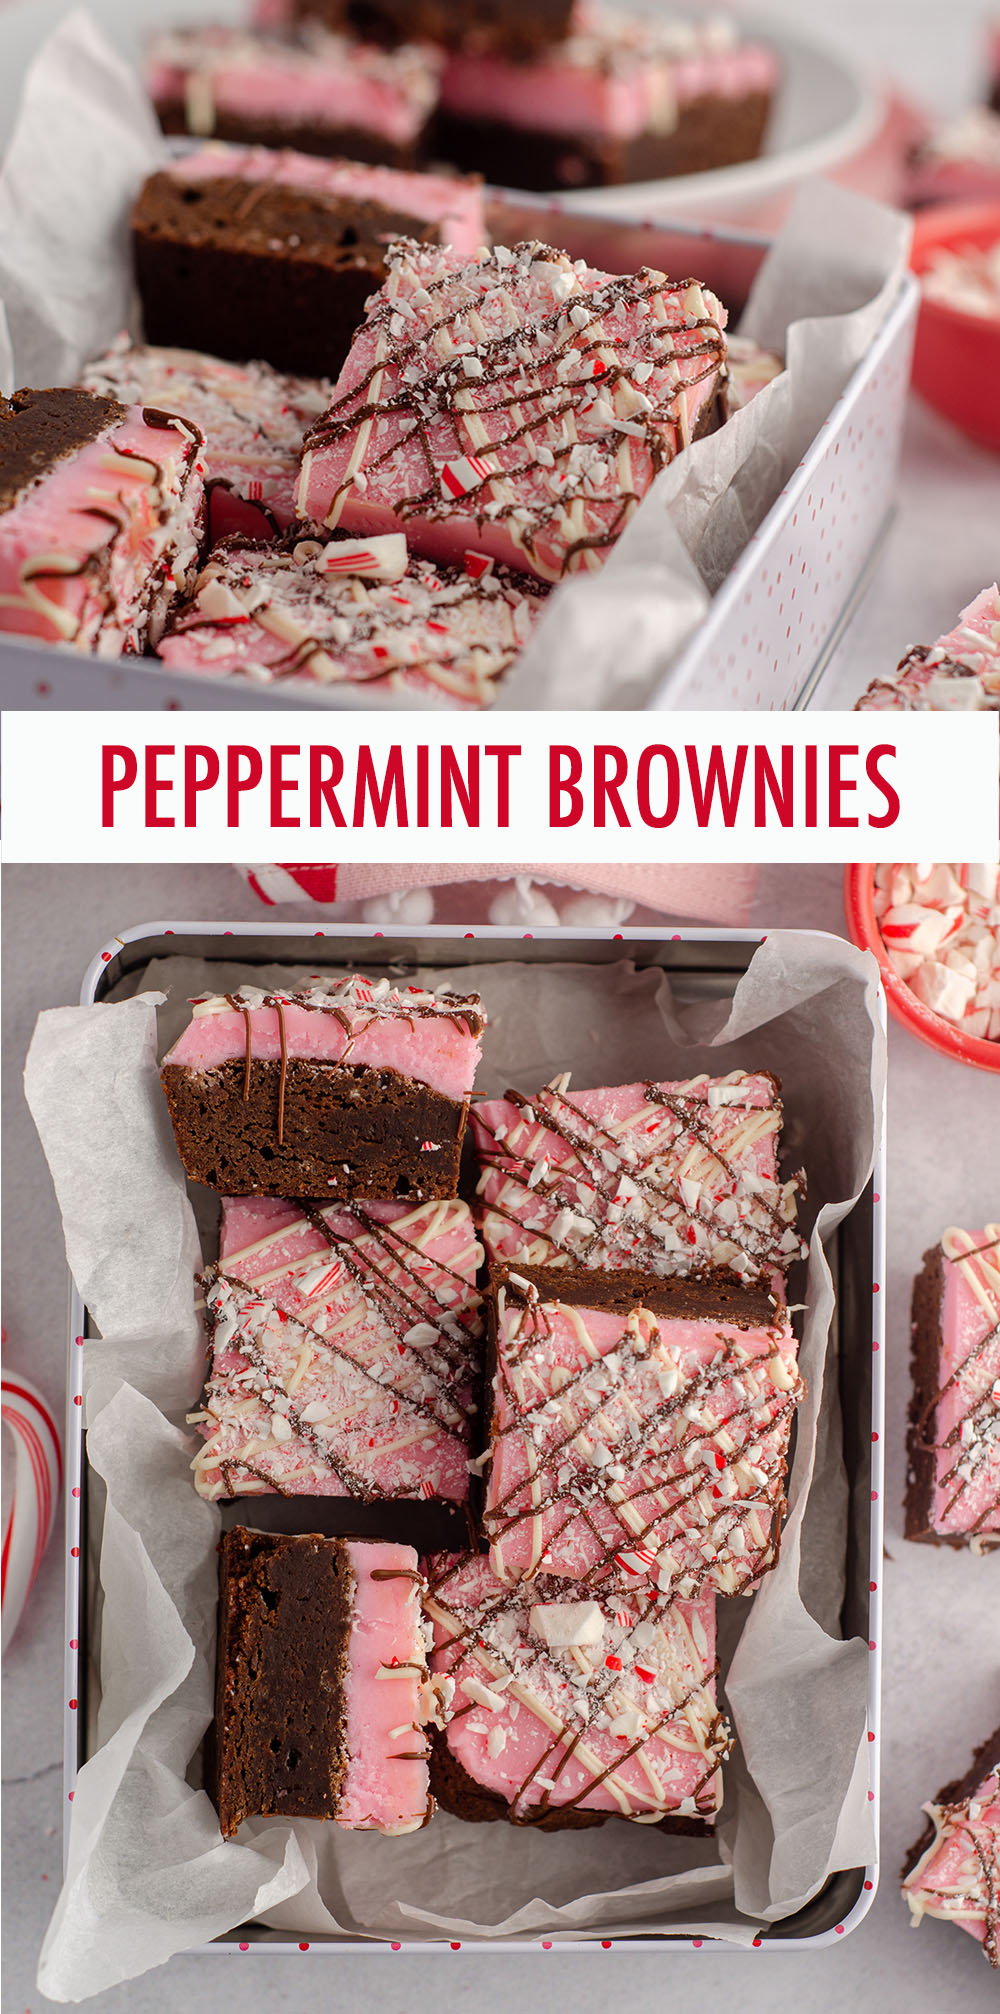 These peppermint brownies are made from a fudgy scratch brownie base and topped with a creamy peppermint buttercream. Top them with drizzled chocolate and crushed candy canes for a festive holiday treat!